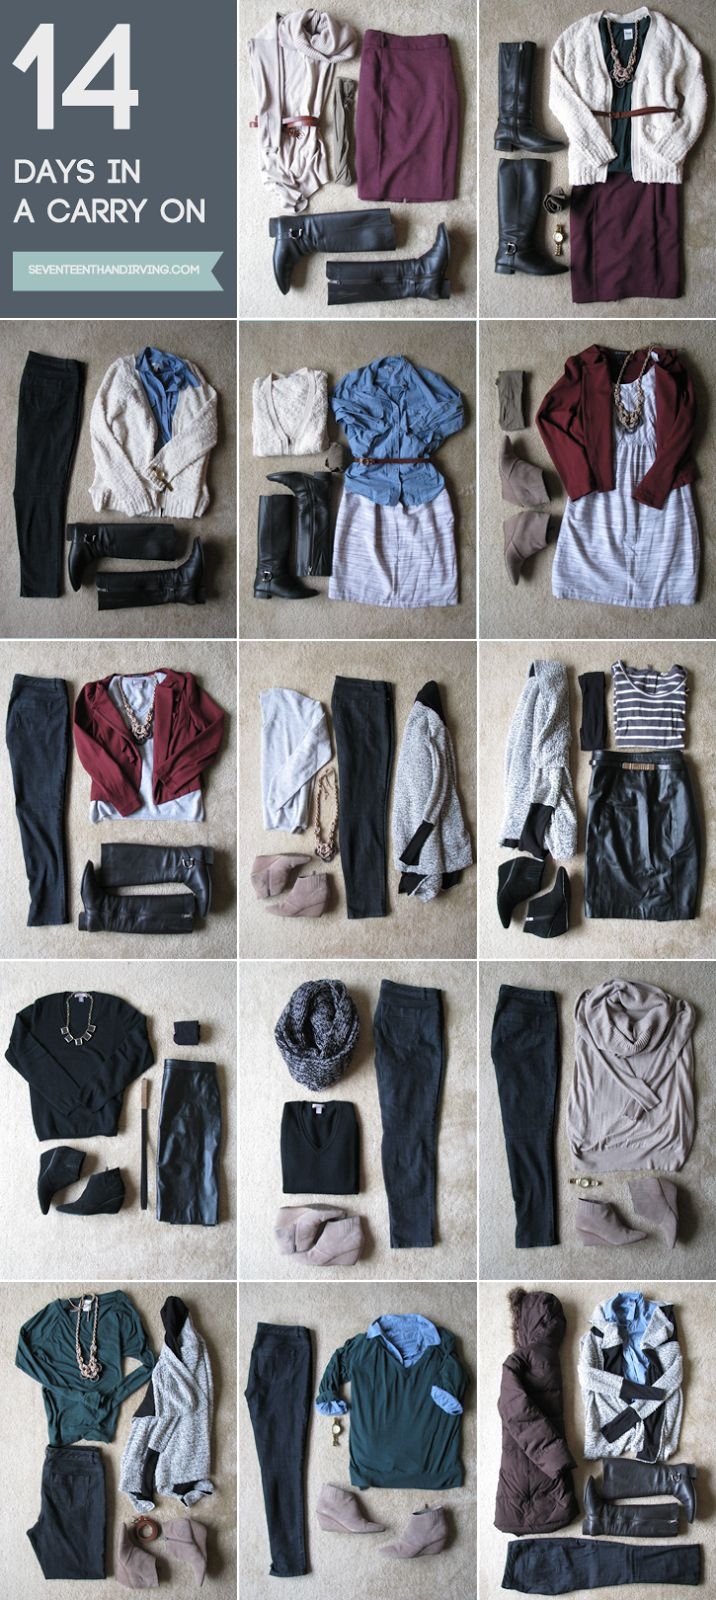 13 Pieces, 14 outfits. How to travel for 2 weeks in a carry-on, and how to maximize your closet.